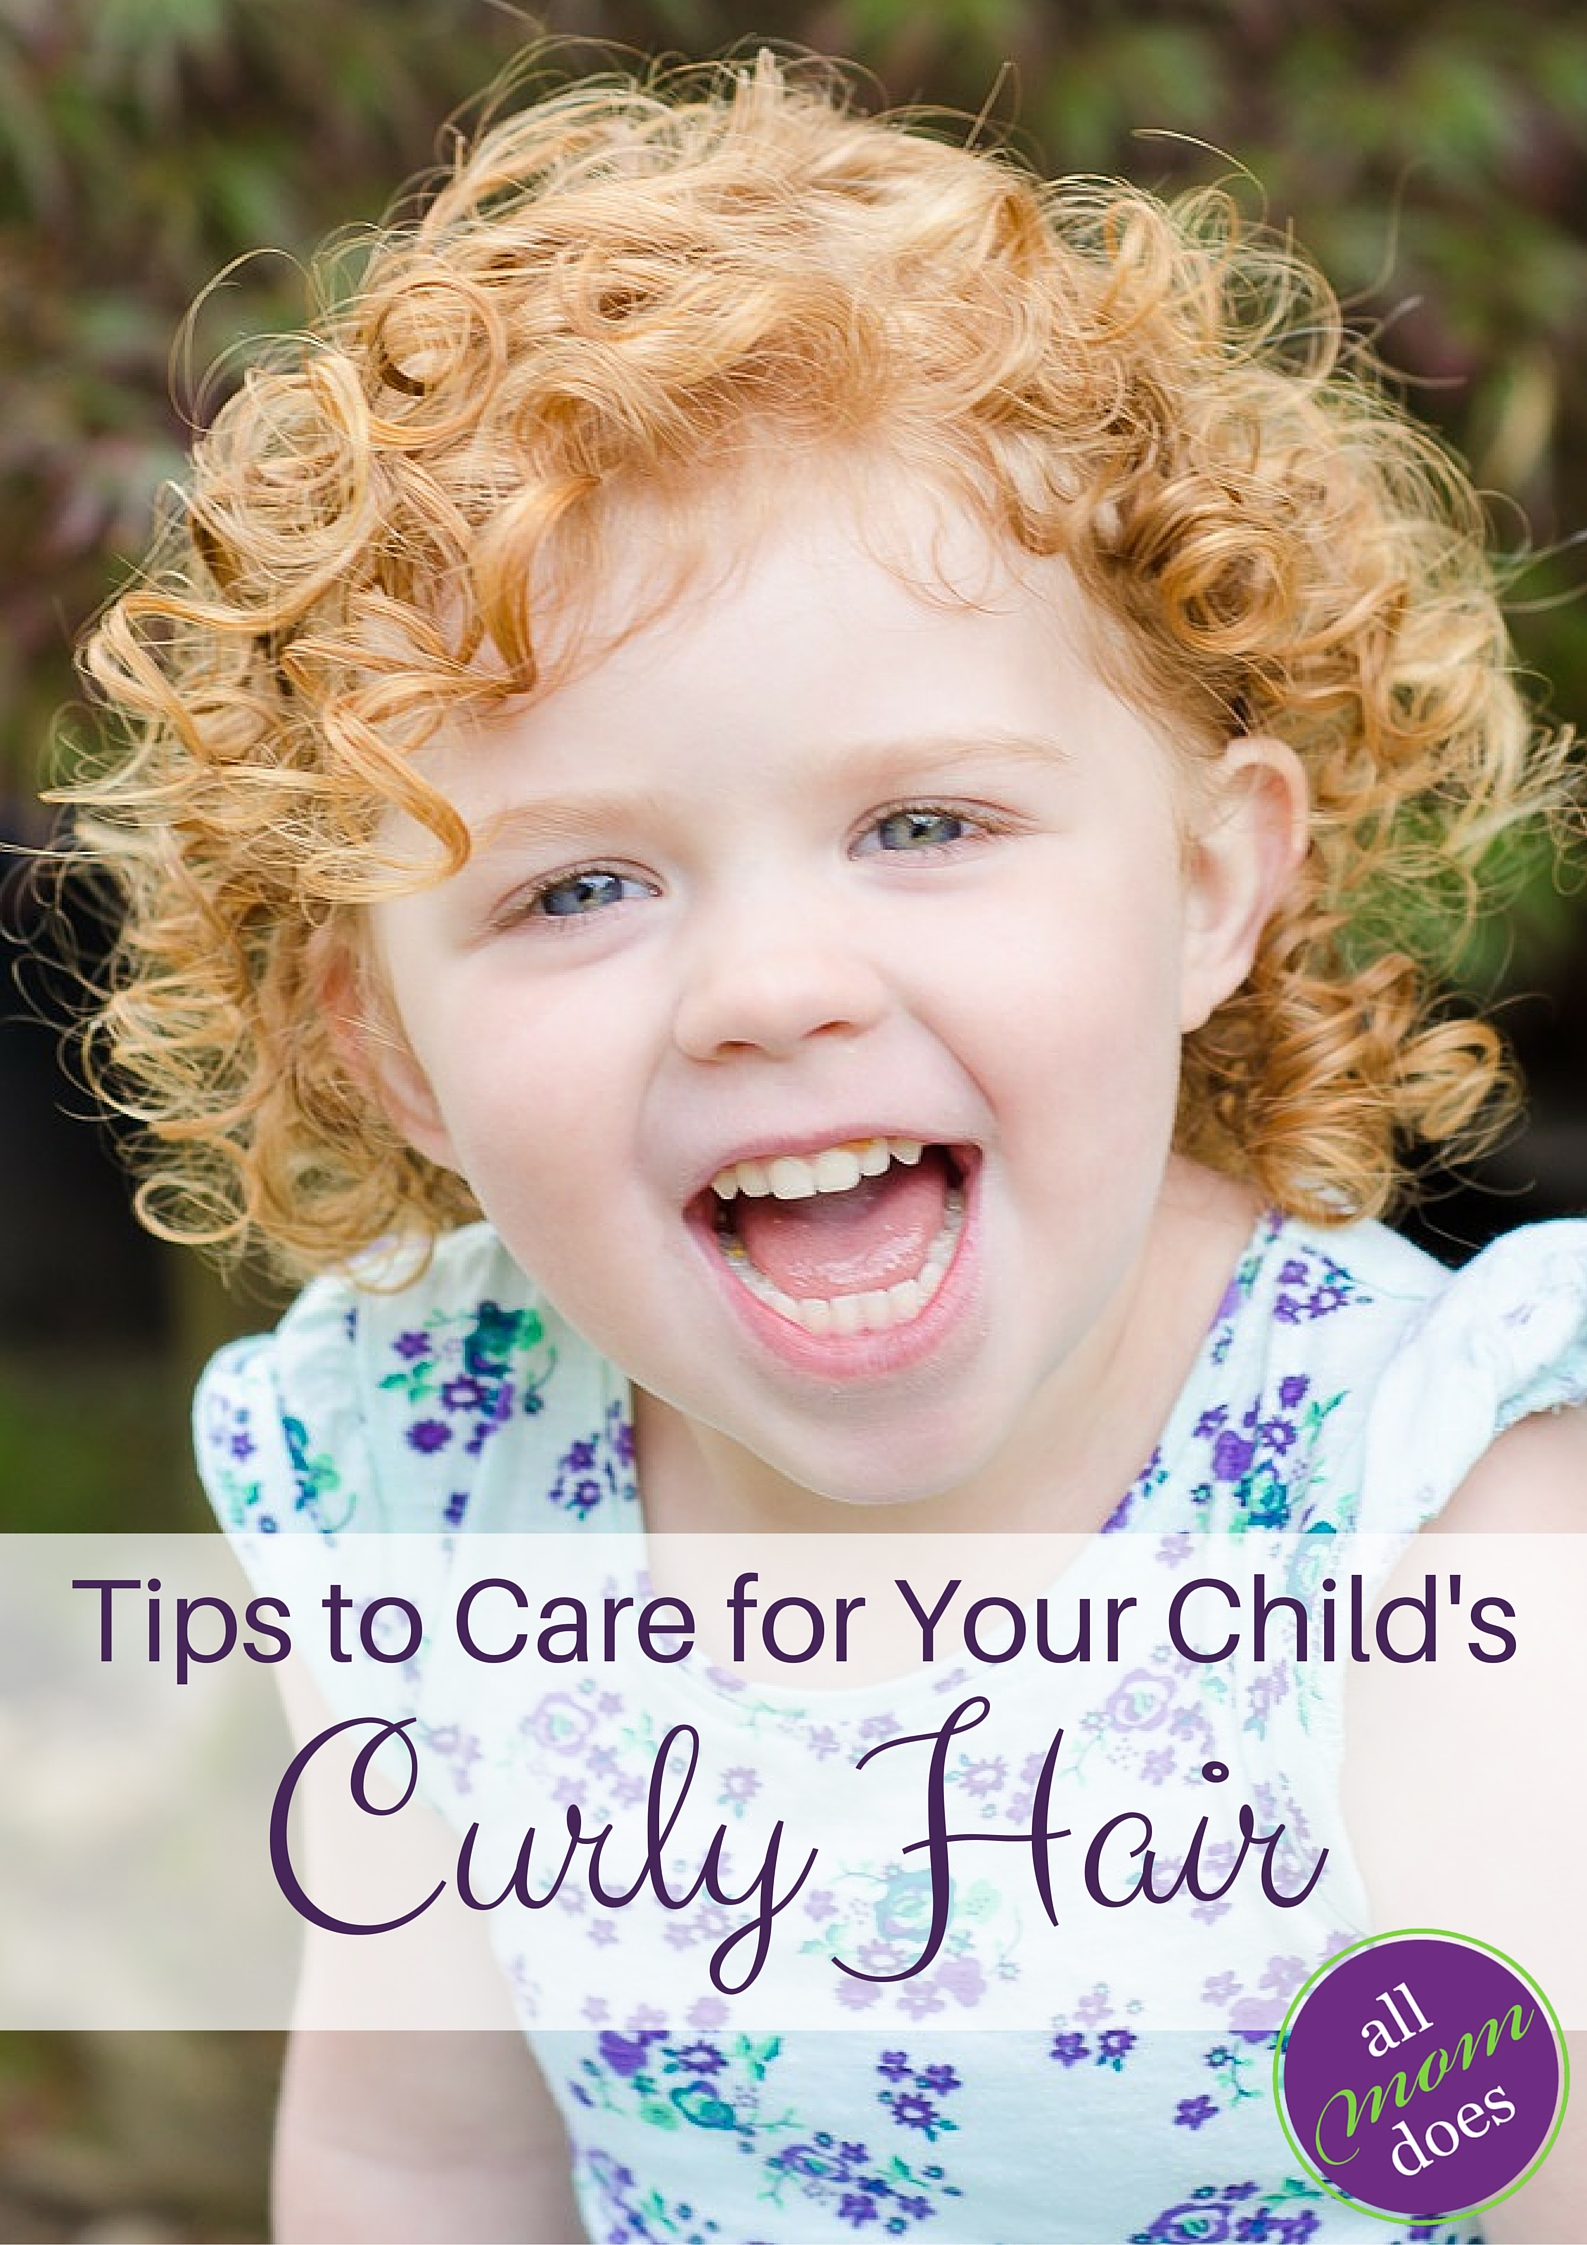 Does your child have curly hair? Tips and products to care for curly hair on kids.